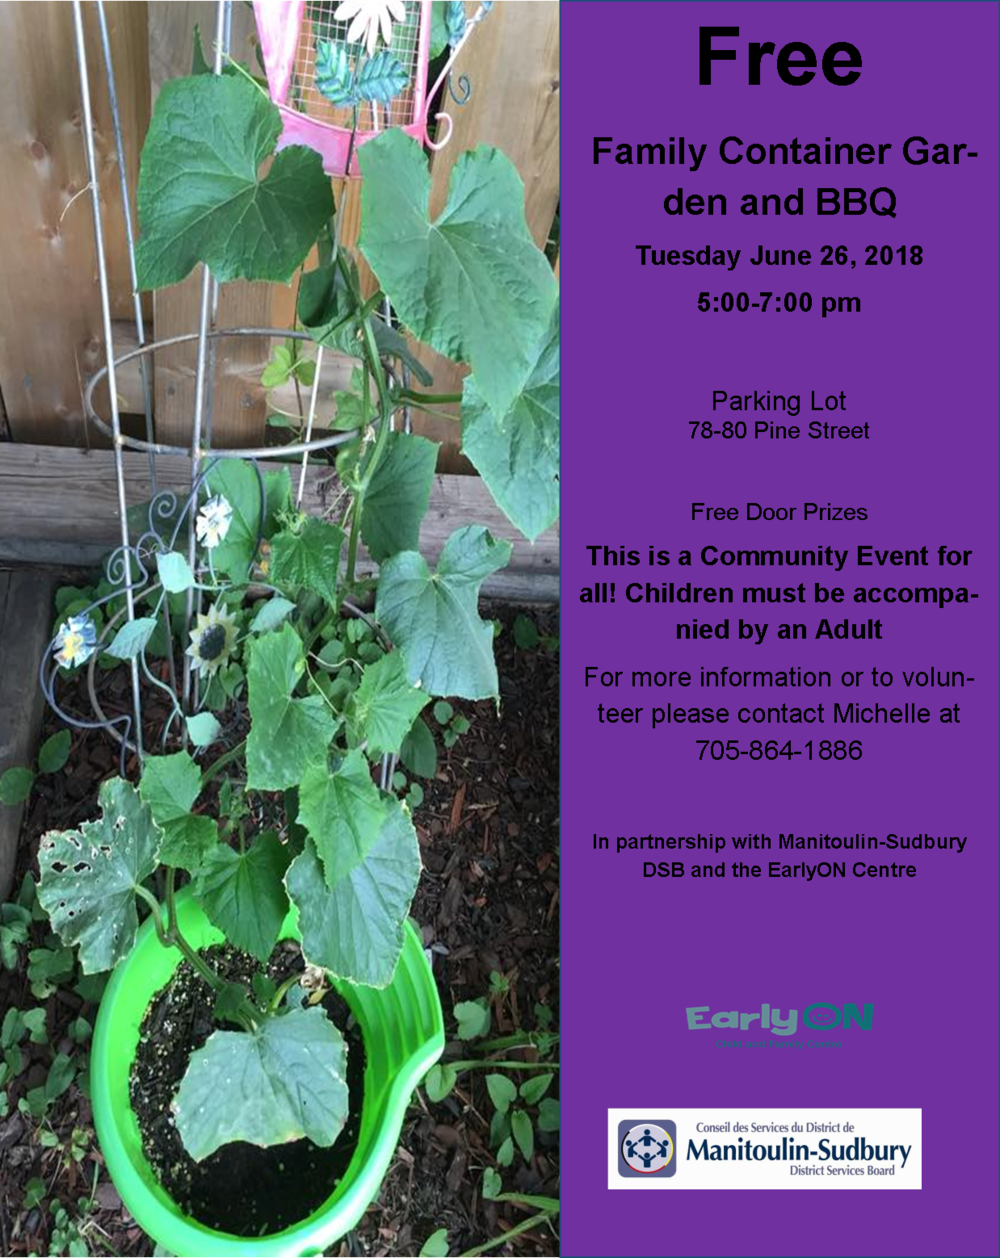 chapleau child care free family container garden and bbq june 26.png